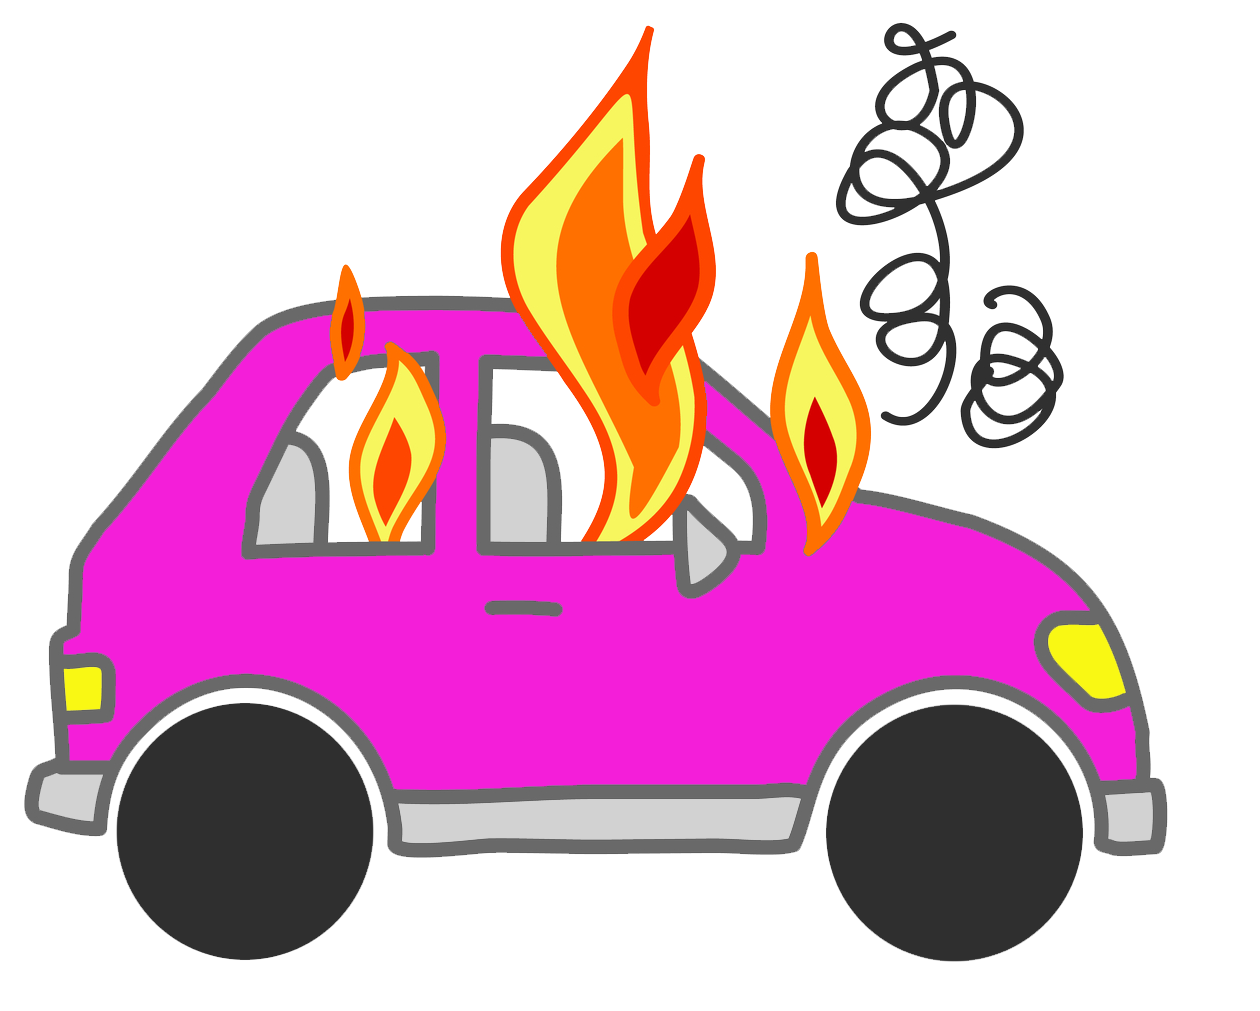 Cars on fire noxad. Clipart car flame